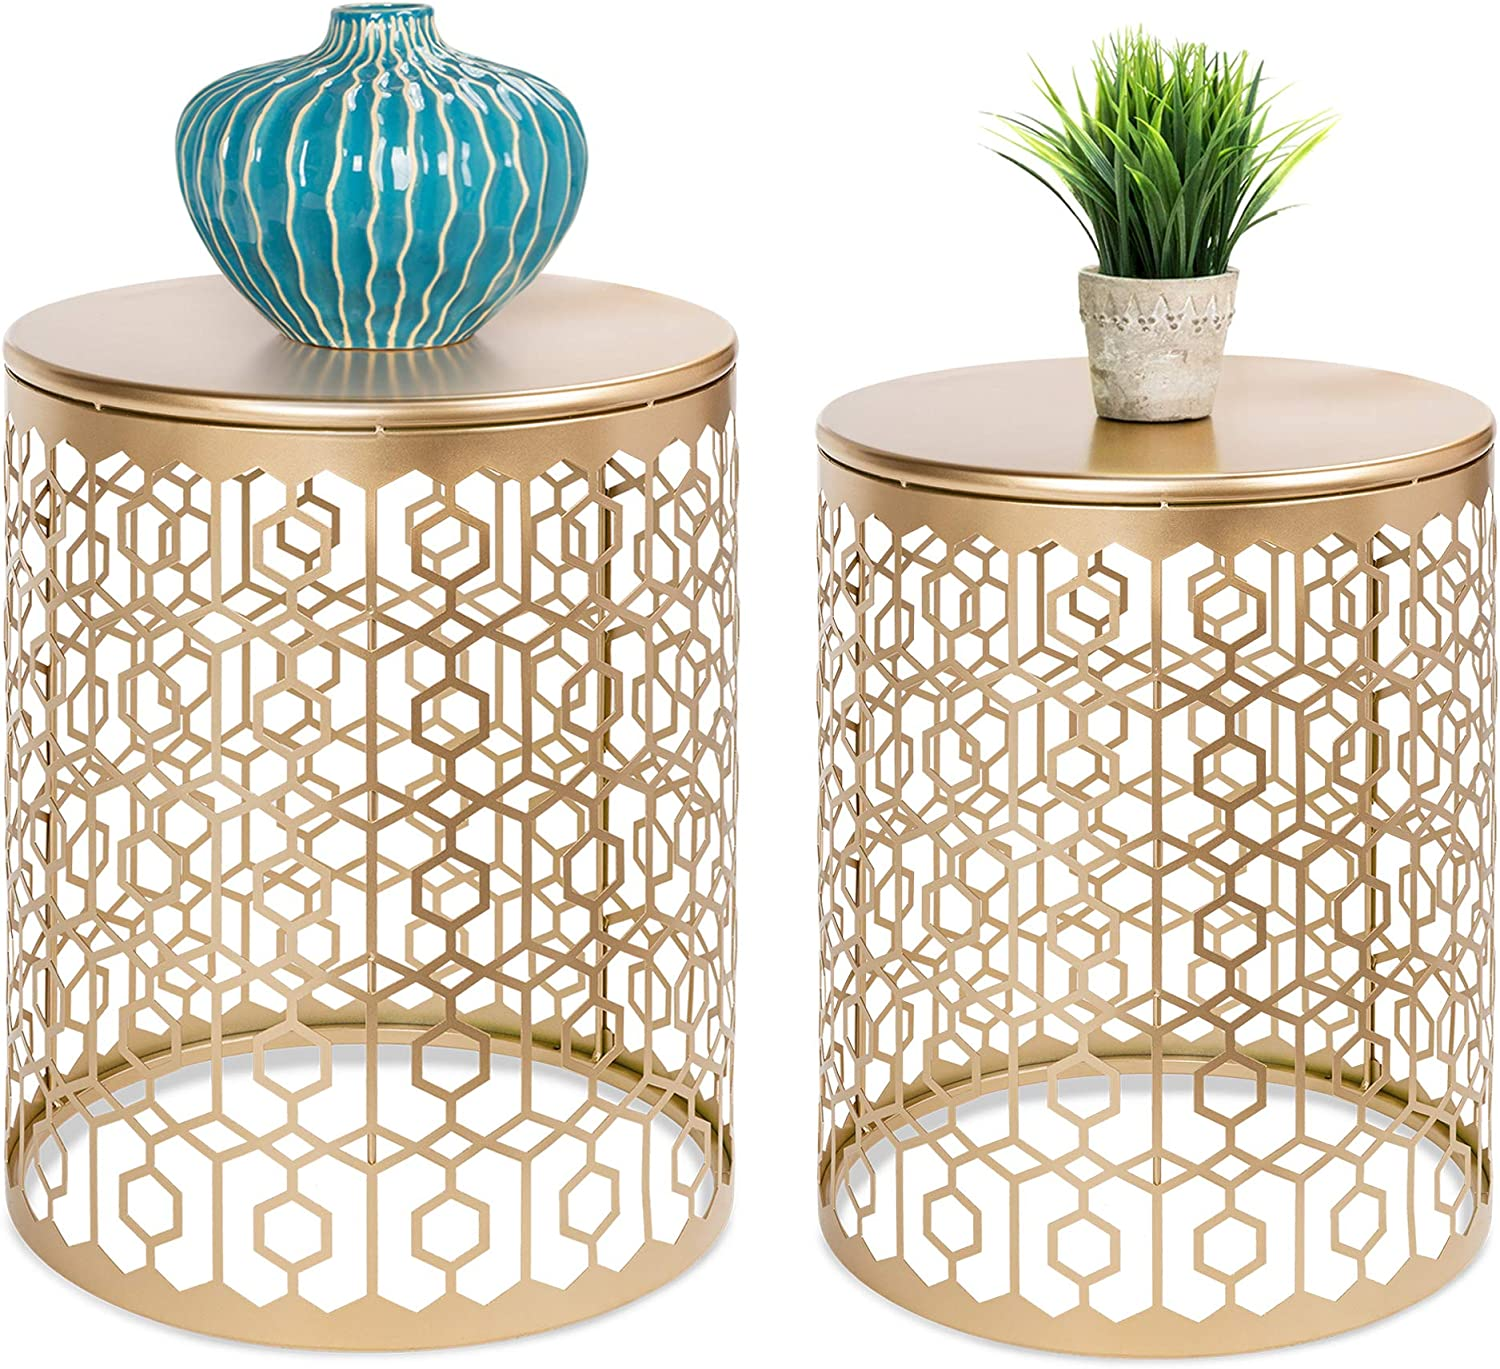 Amazon Com Best Choice Products Set Of 2 Decorative Round Accent Side Coffee End Table Nightstands For Living Room Bedroom Office Home Decor W Nesting Design Hexagon Diamond Patterns Gold Furniture